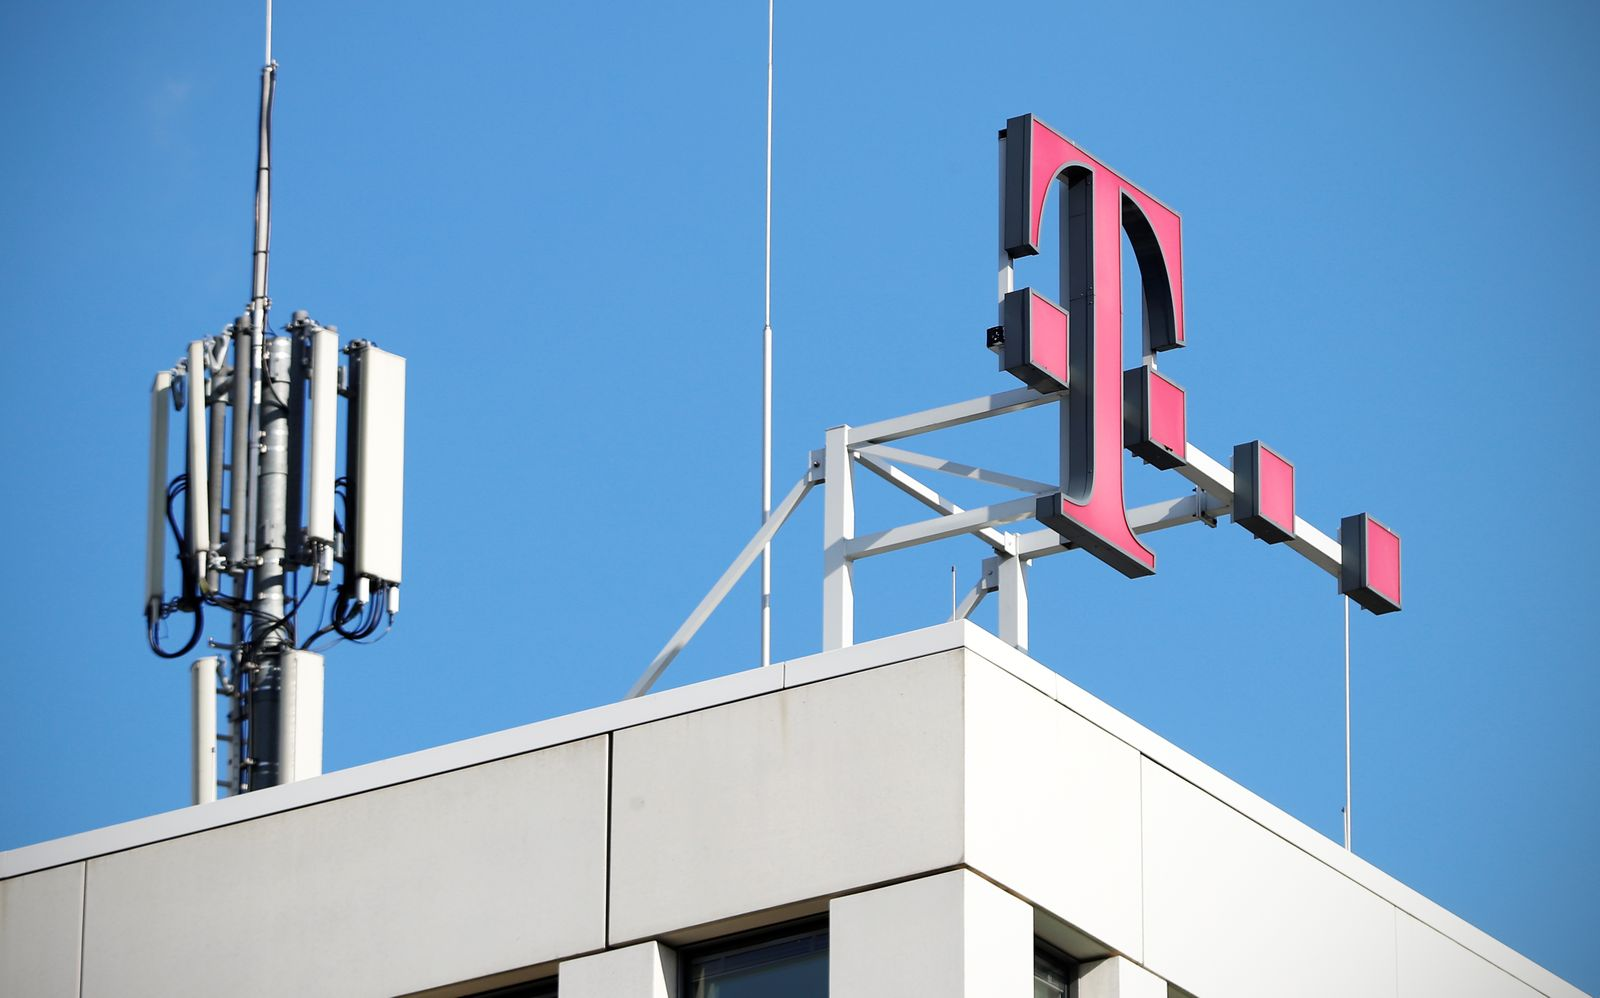 GSM mobile phone antennas and the logo of Deutsche Telekom AG are seen atop of the headquarters of German telecommunications giant in Bonn